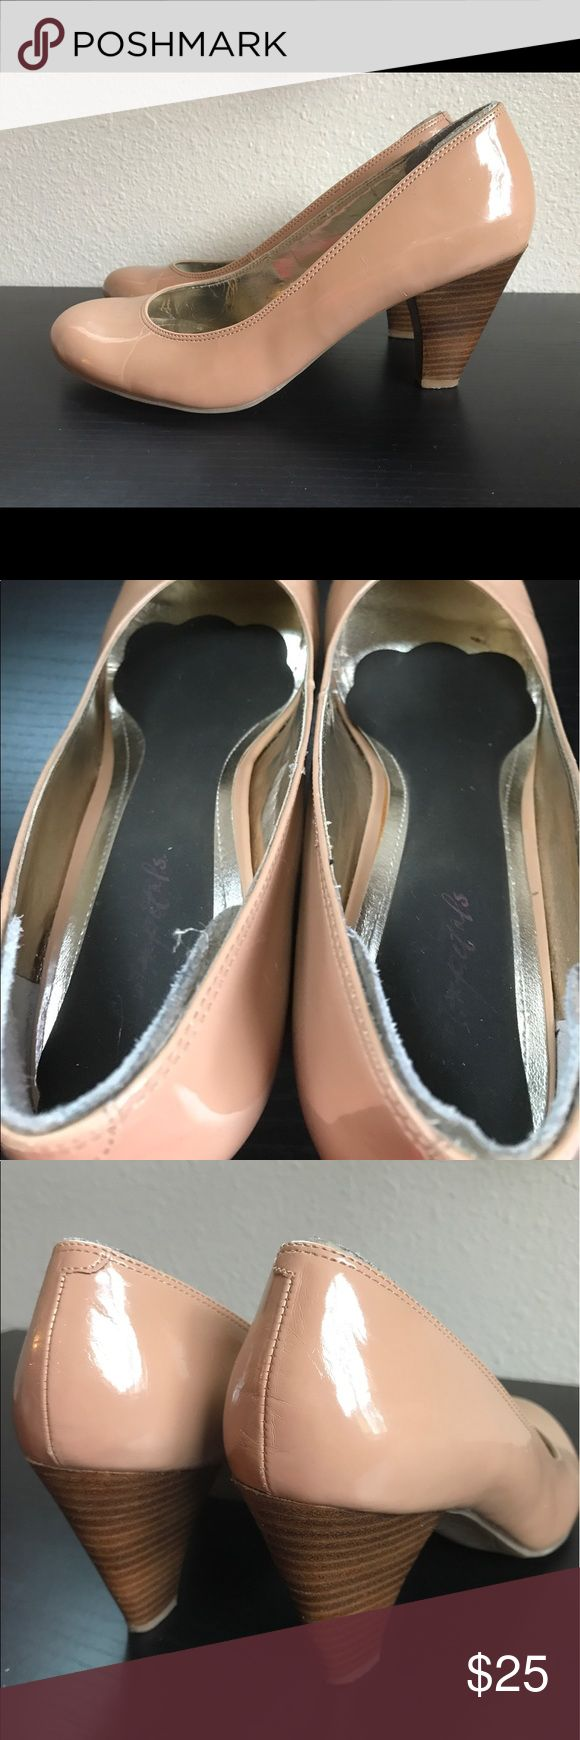 """Kenneth Cole Tears Go By nude patent pump heel 9.5 The Kenneth Cole Reaction """"Tears Go By"""" camel/beige/nude patent pump heel size 9.5 - with shoe and heel cushions. Preowned with blemishes and scratches. Only worn them a few times but the inner lining started to shed off and got scratched on the outsides. You can't really tell when you wear them but when you get up close and take pictures of every flaw they look more beat up.  Color options: Camel/Beige Width: Medium Style: Pumps Material…"""